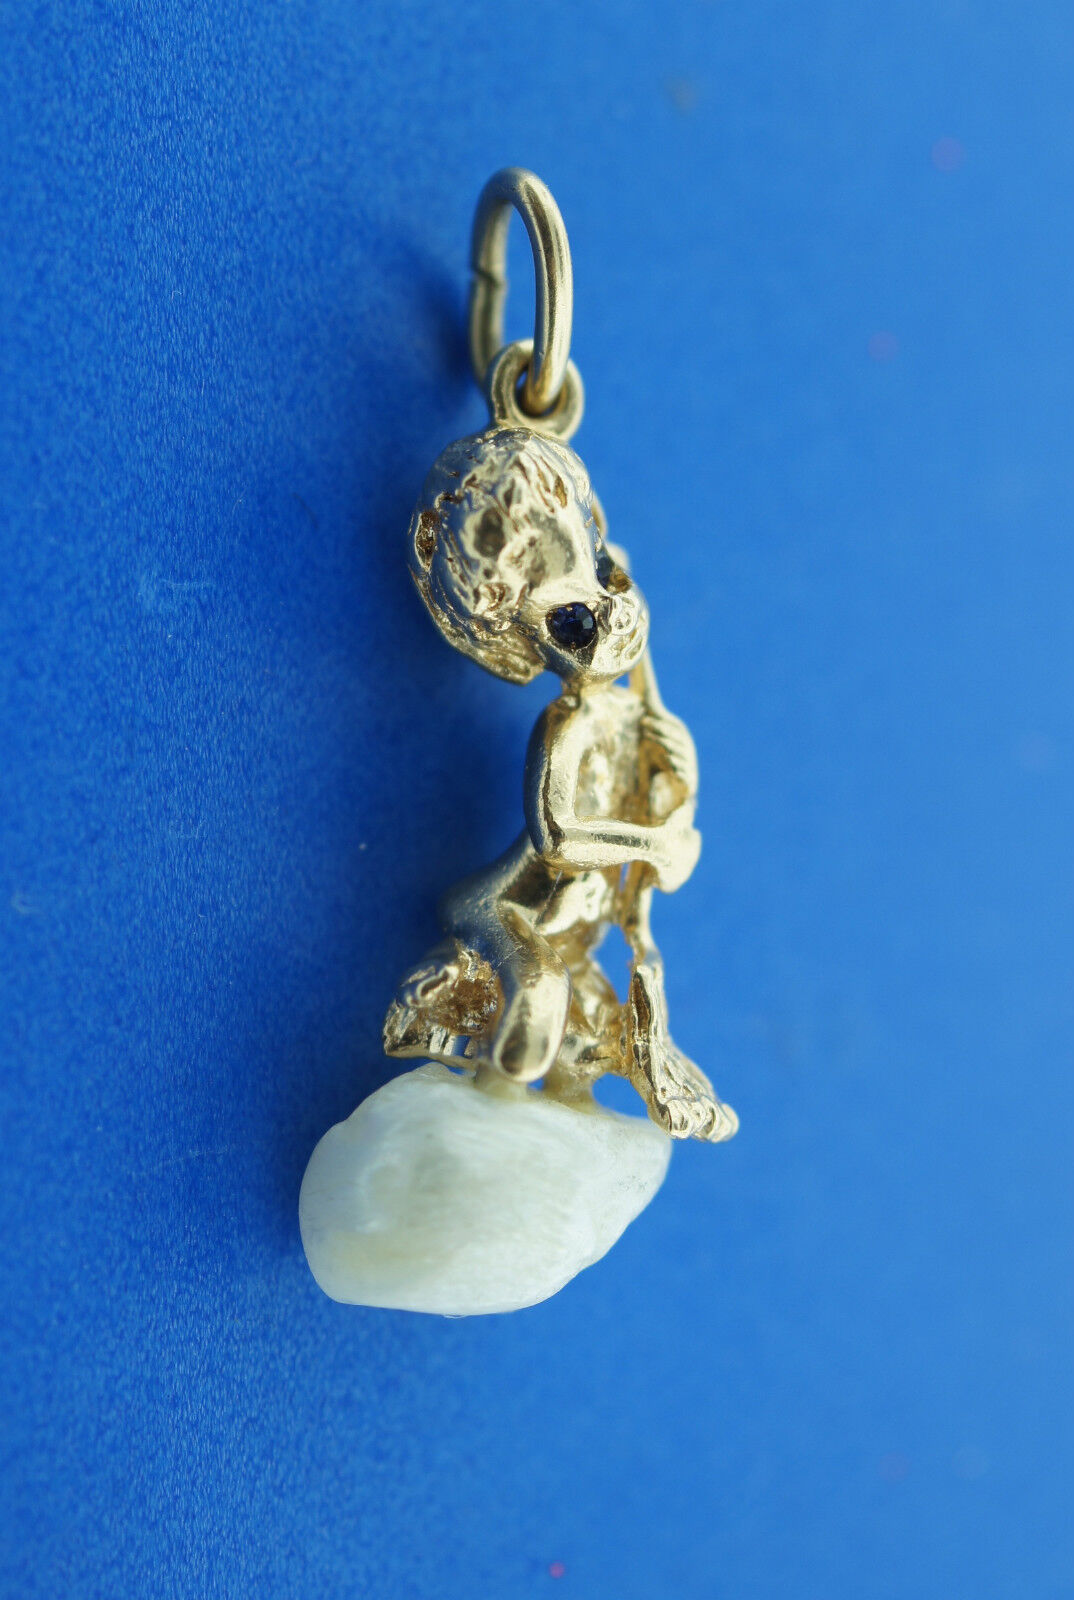 RUSER ADORABLE 14K gold & PEARL PENDANT ANGEL THEMED JEWELRY BABAY WITH BROOM